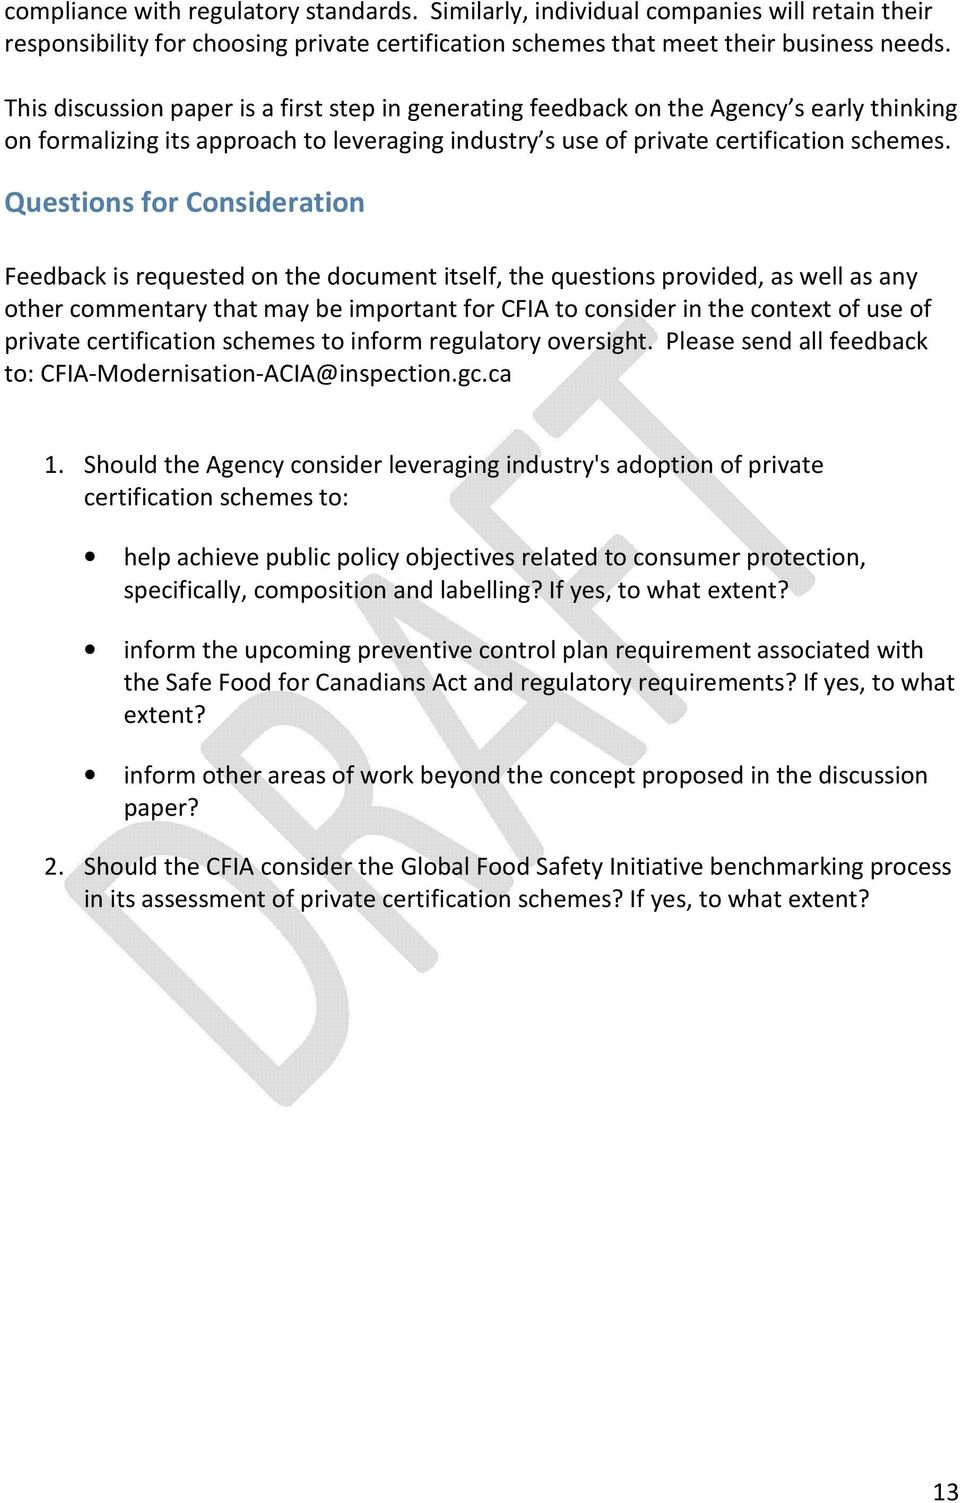 Questions for Consideration Feedback is requested on the document itself, the questions provided, as well as any other commentary that may be important for CFIA to consider in the context of use of